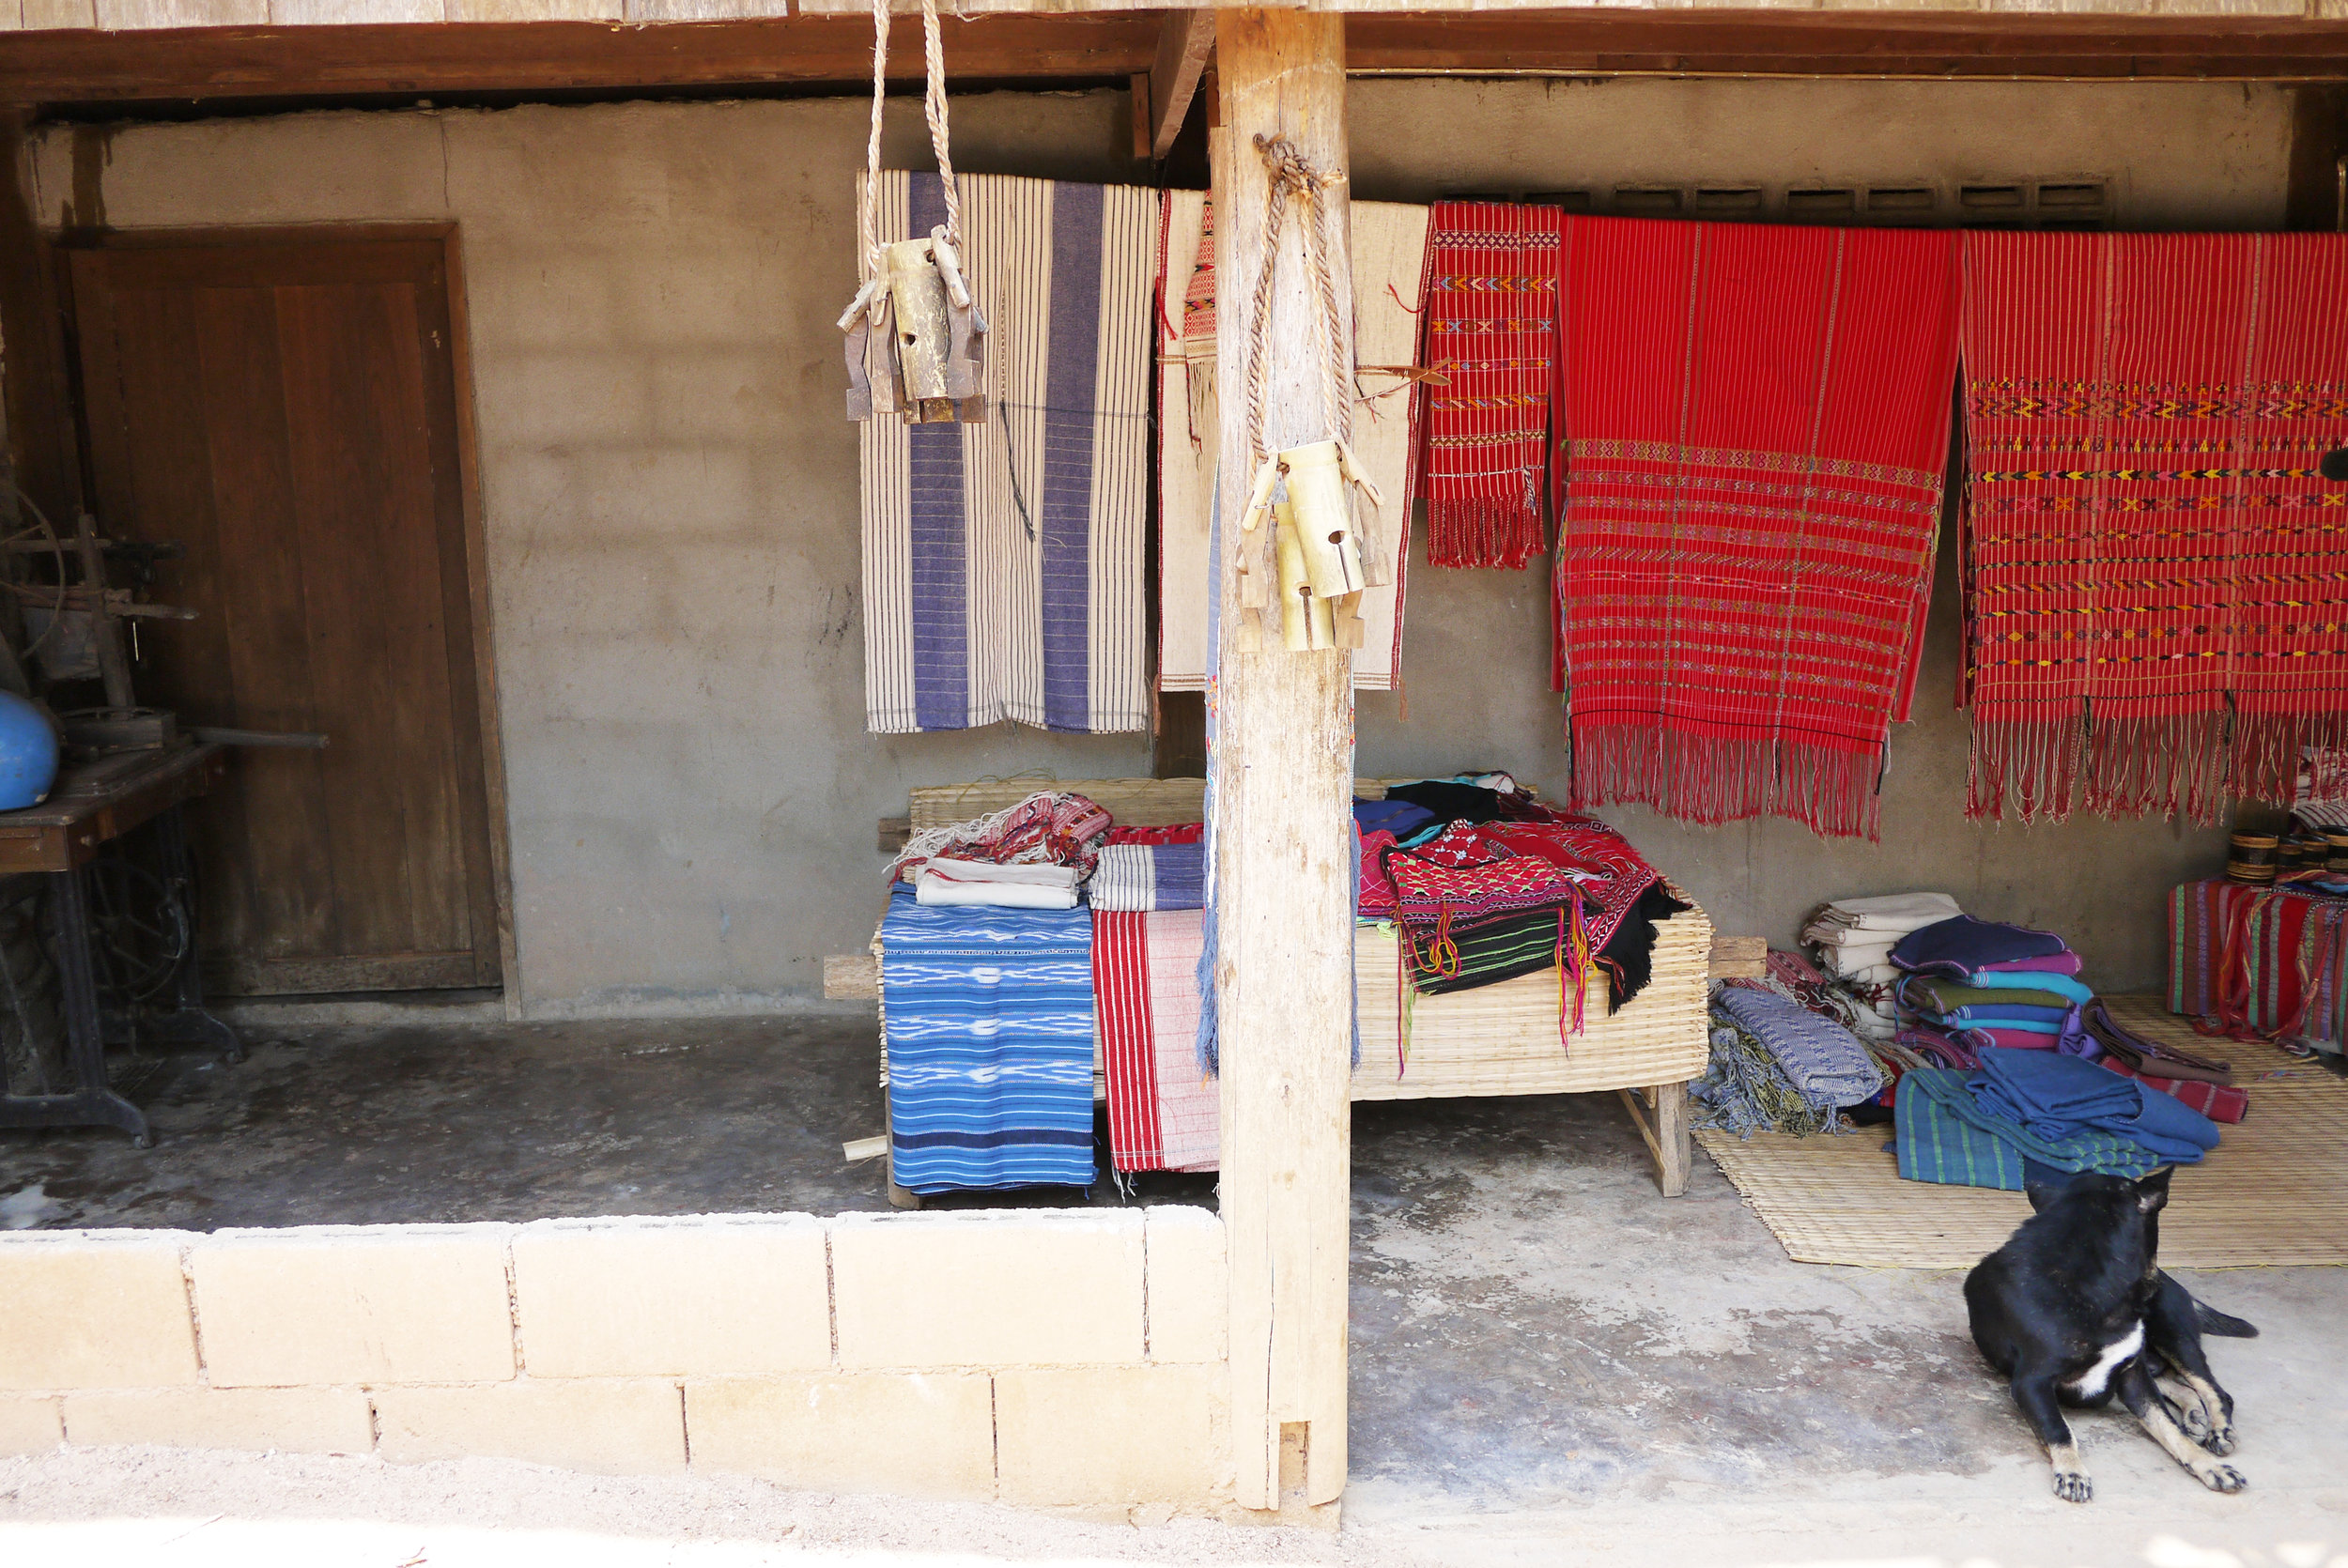 Textiles products for sale at a Karen microenterprise in Mae Chaem district, Chiang Mai Province, Thailand.